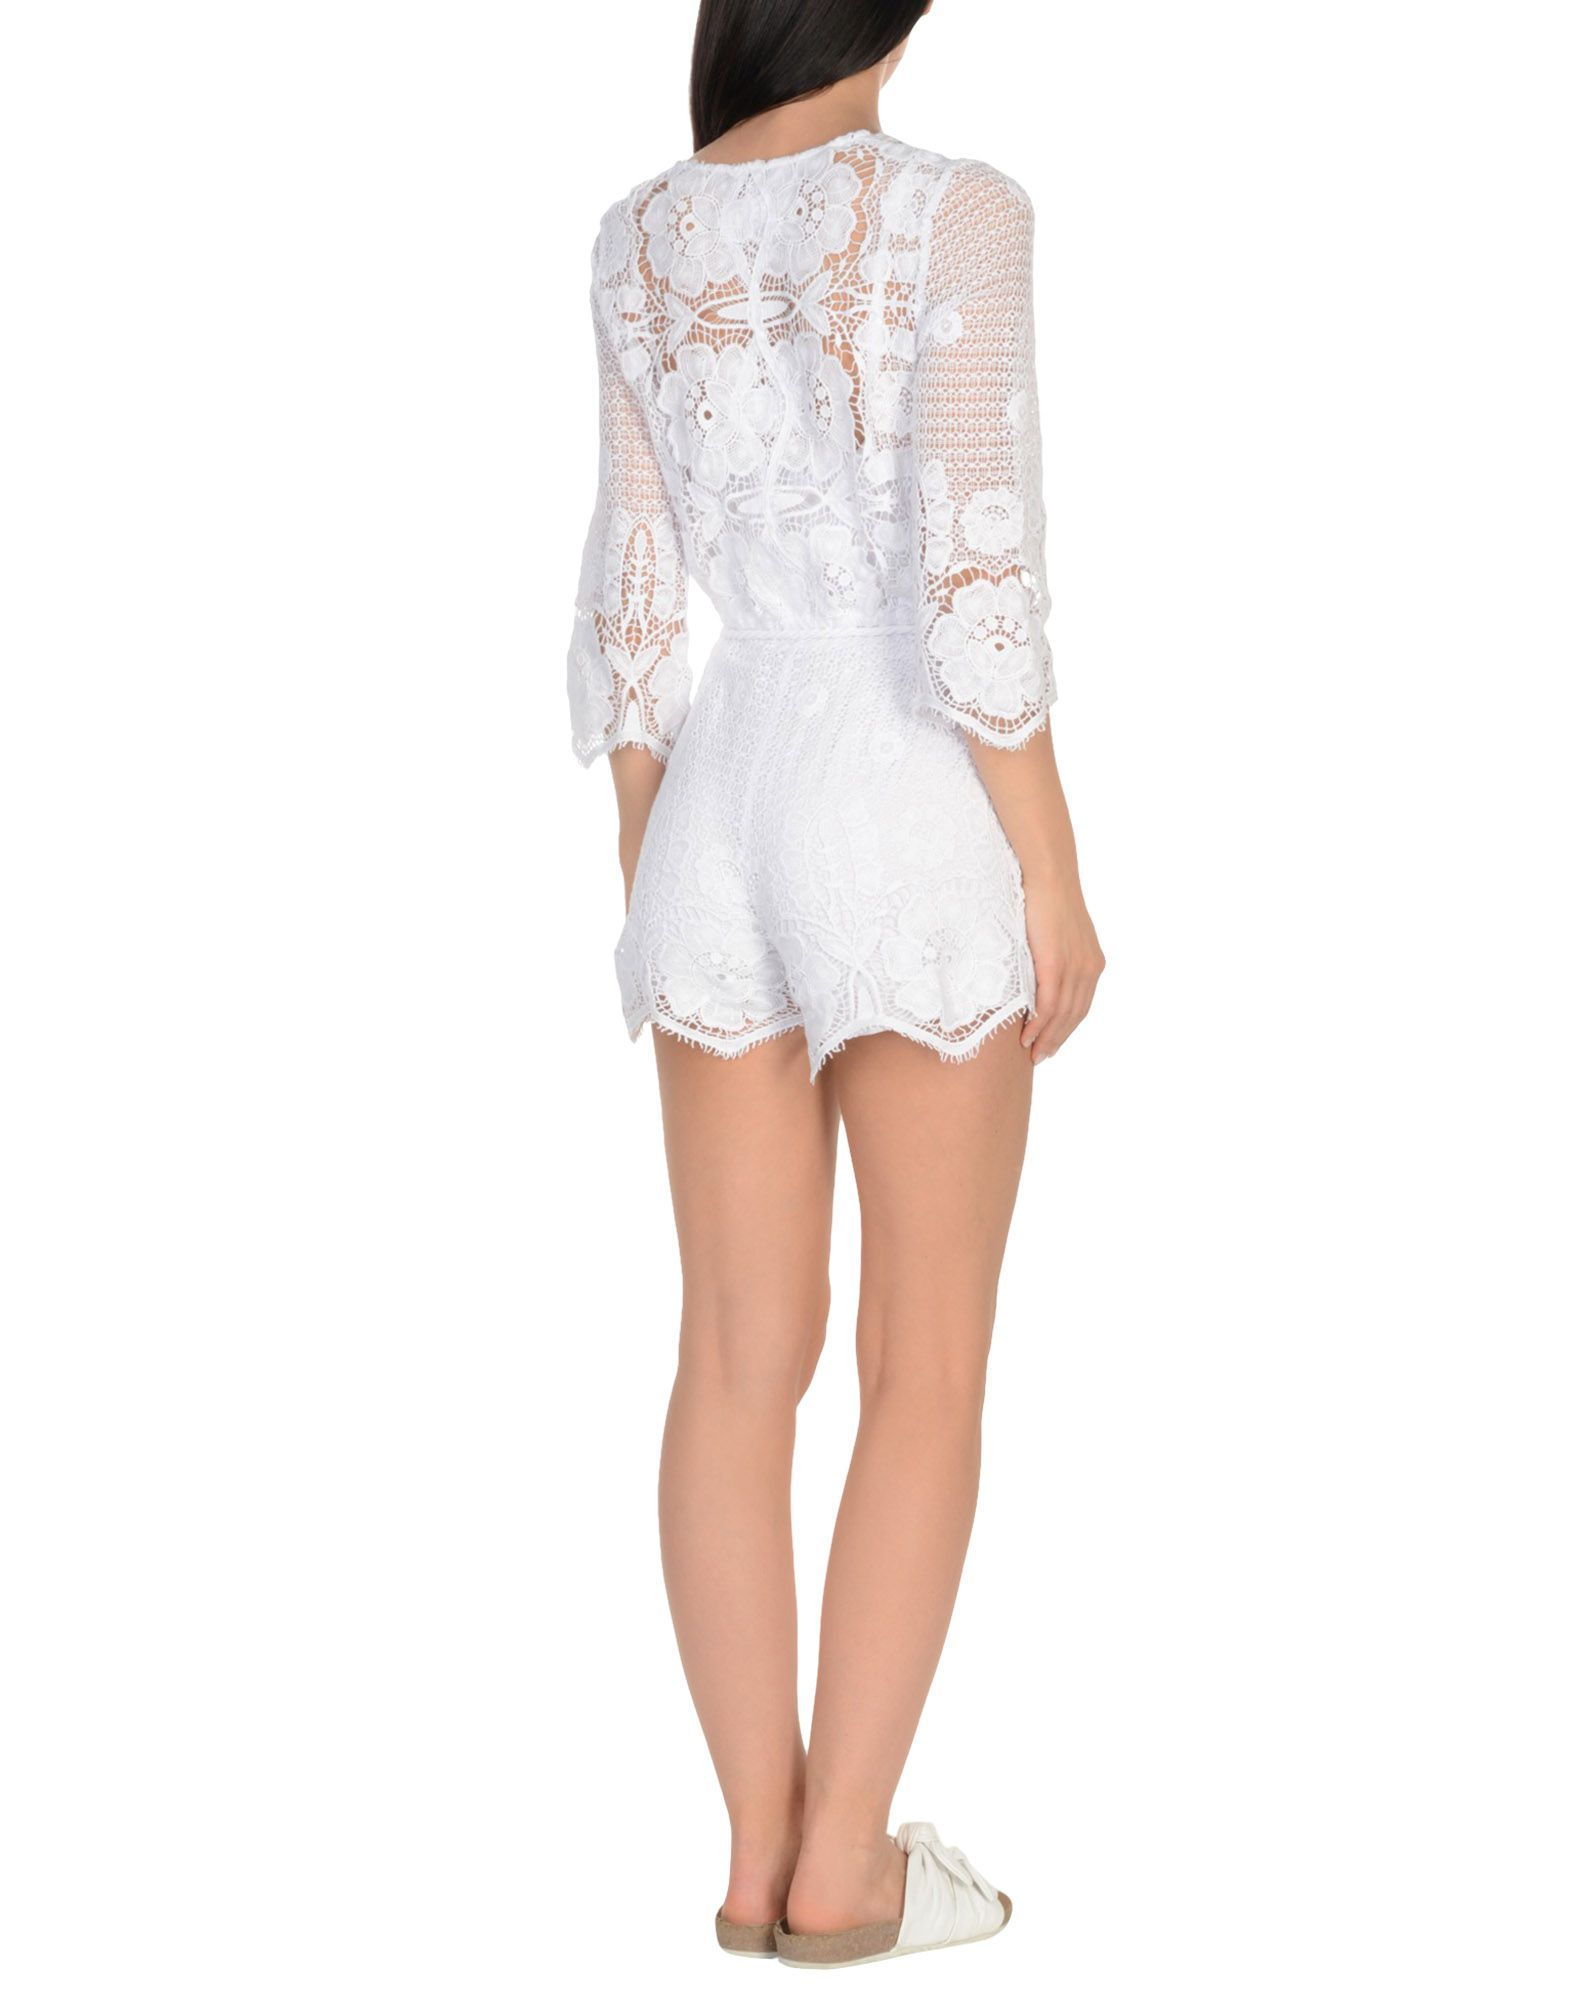 Miguelina White Cotton Lace Playsuit